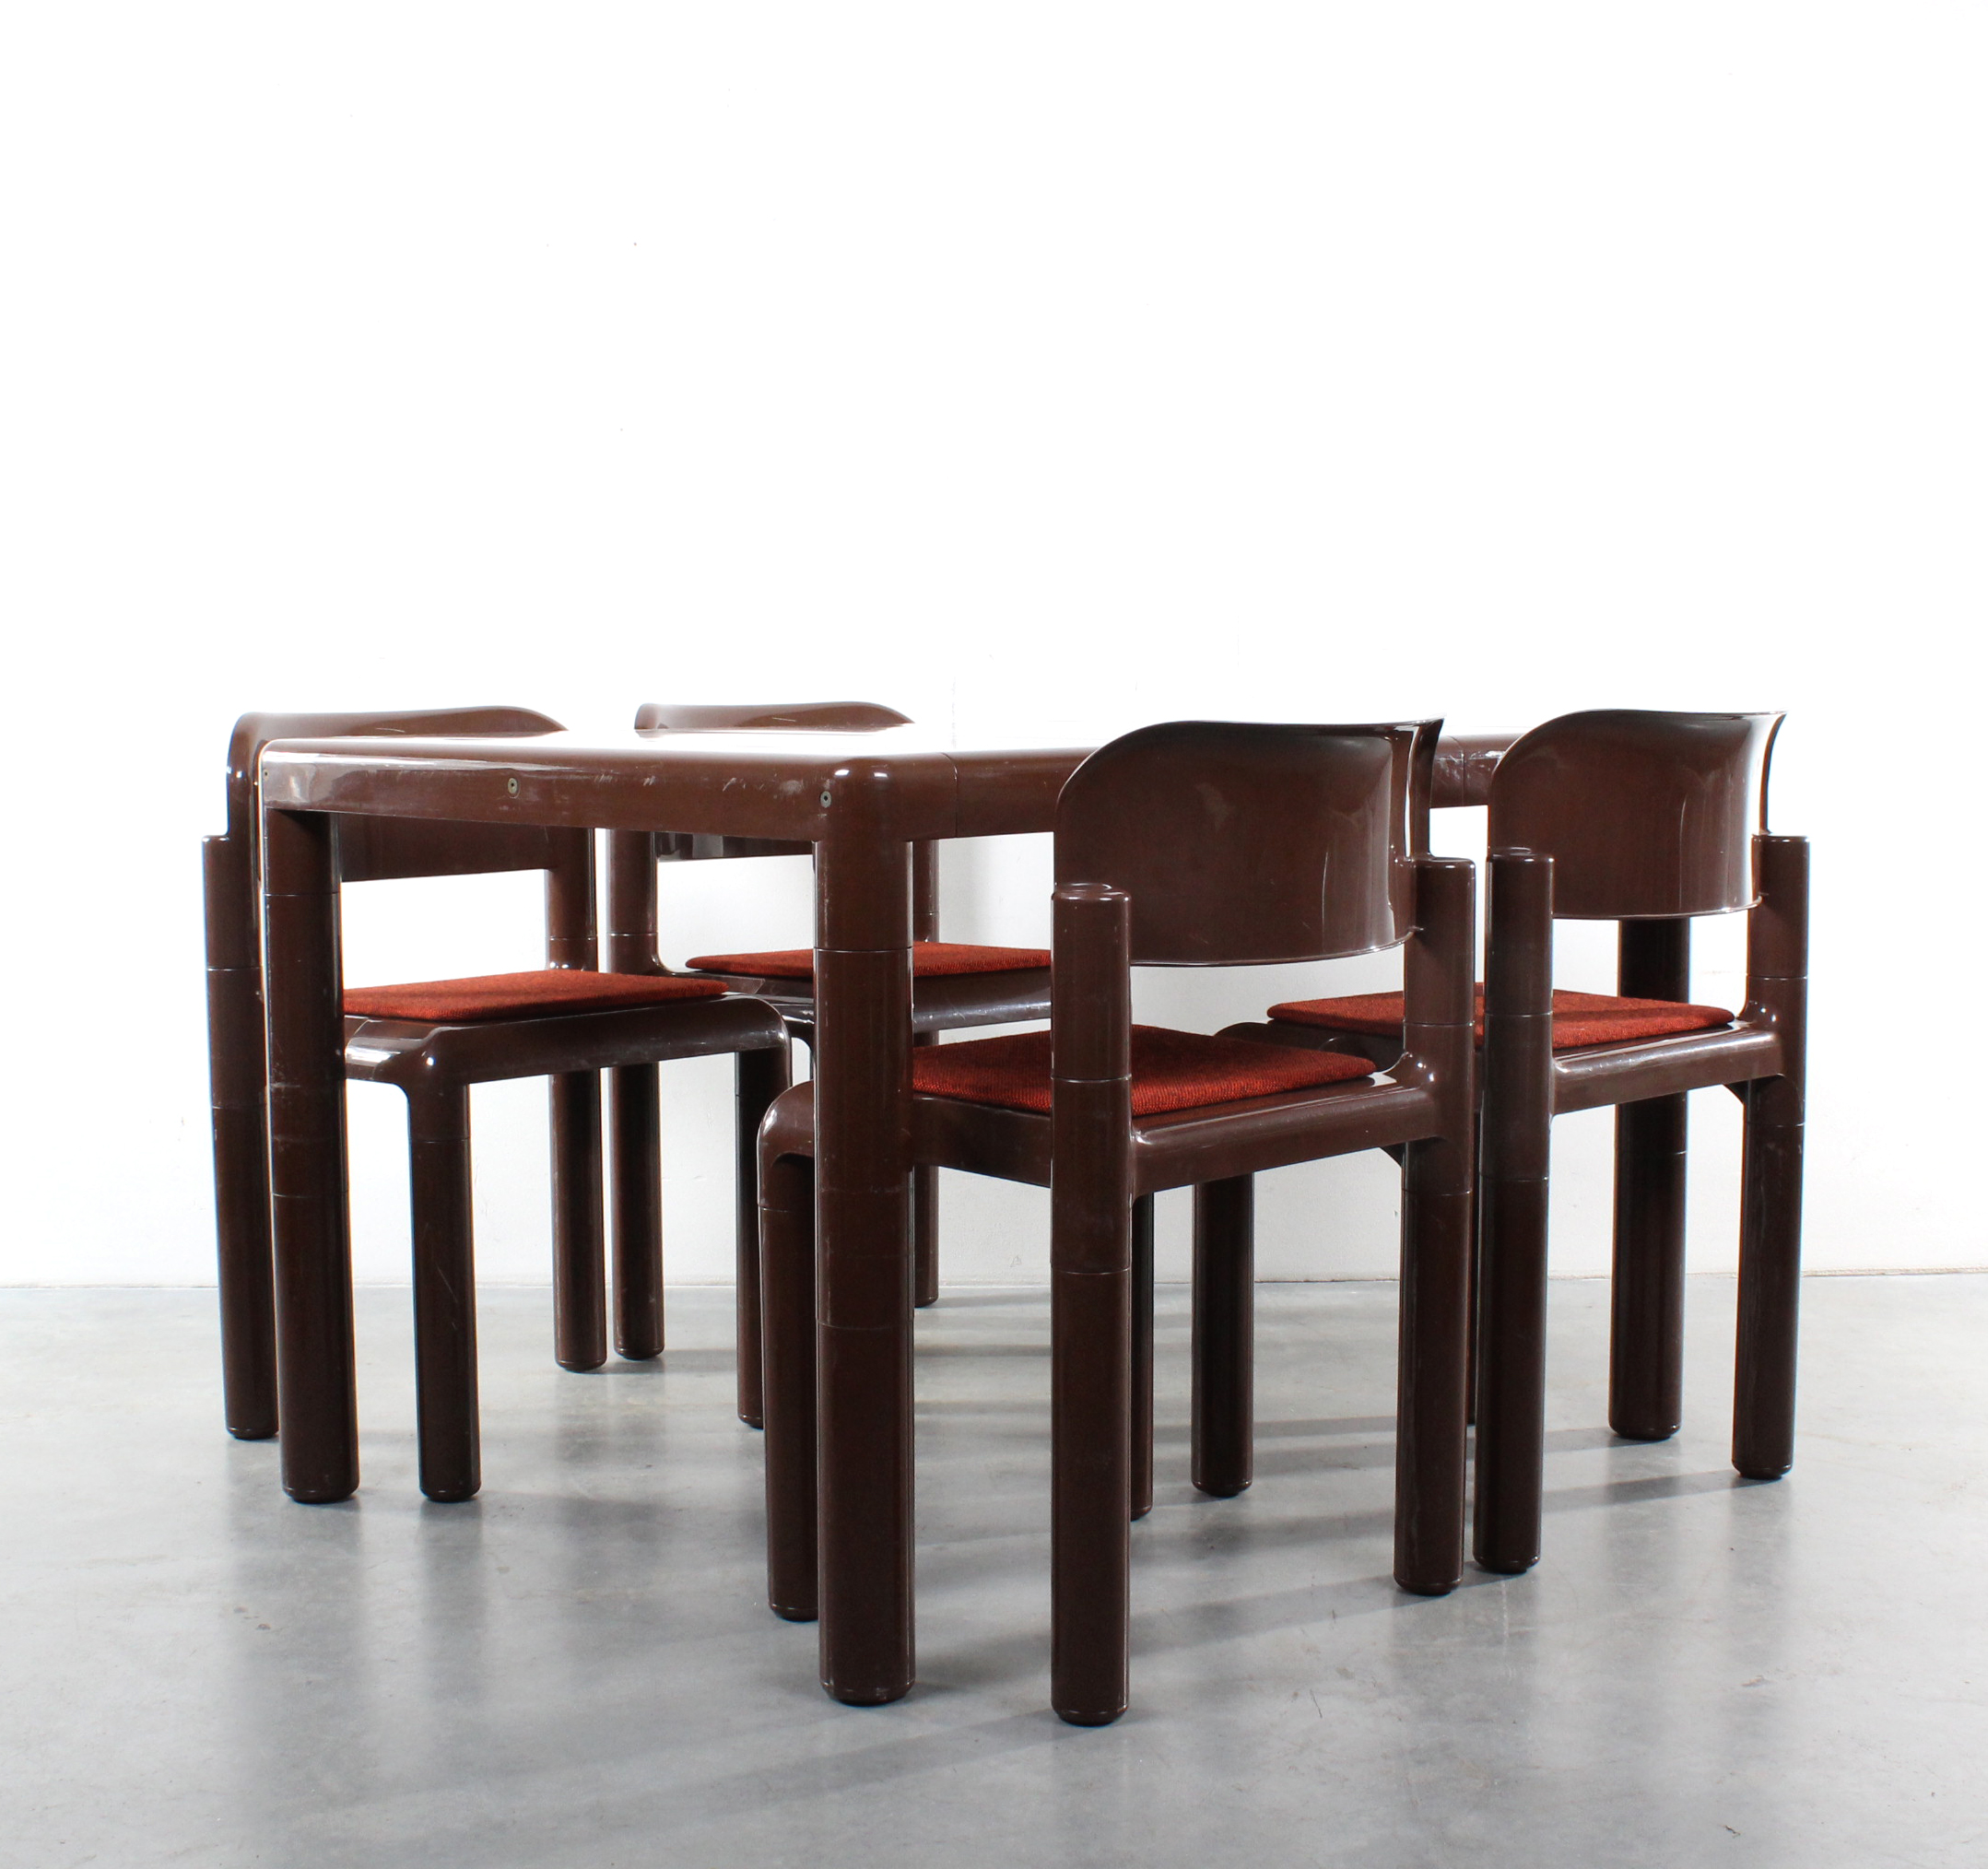 Studio1900 eero aarnio dining set design upo finland for Dining set decoration